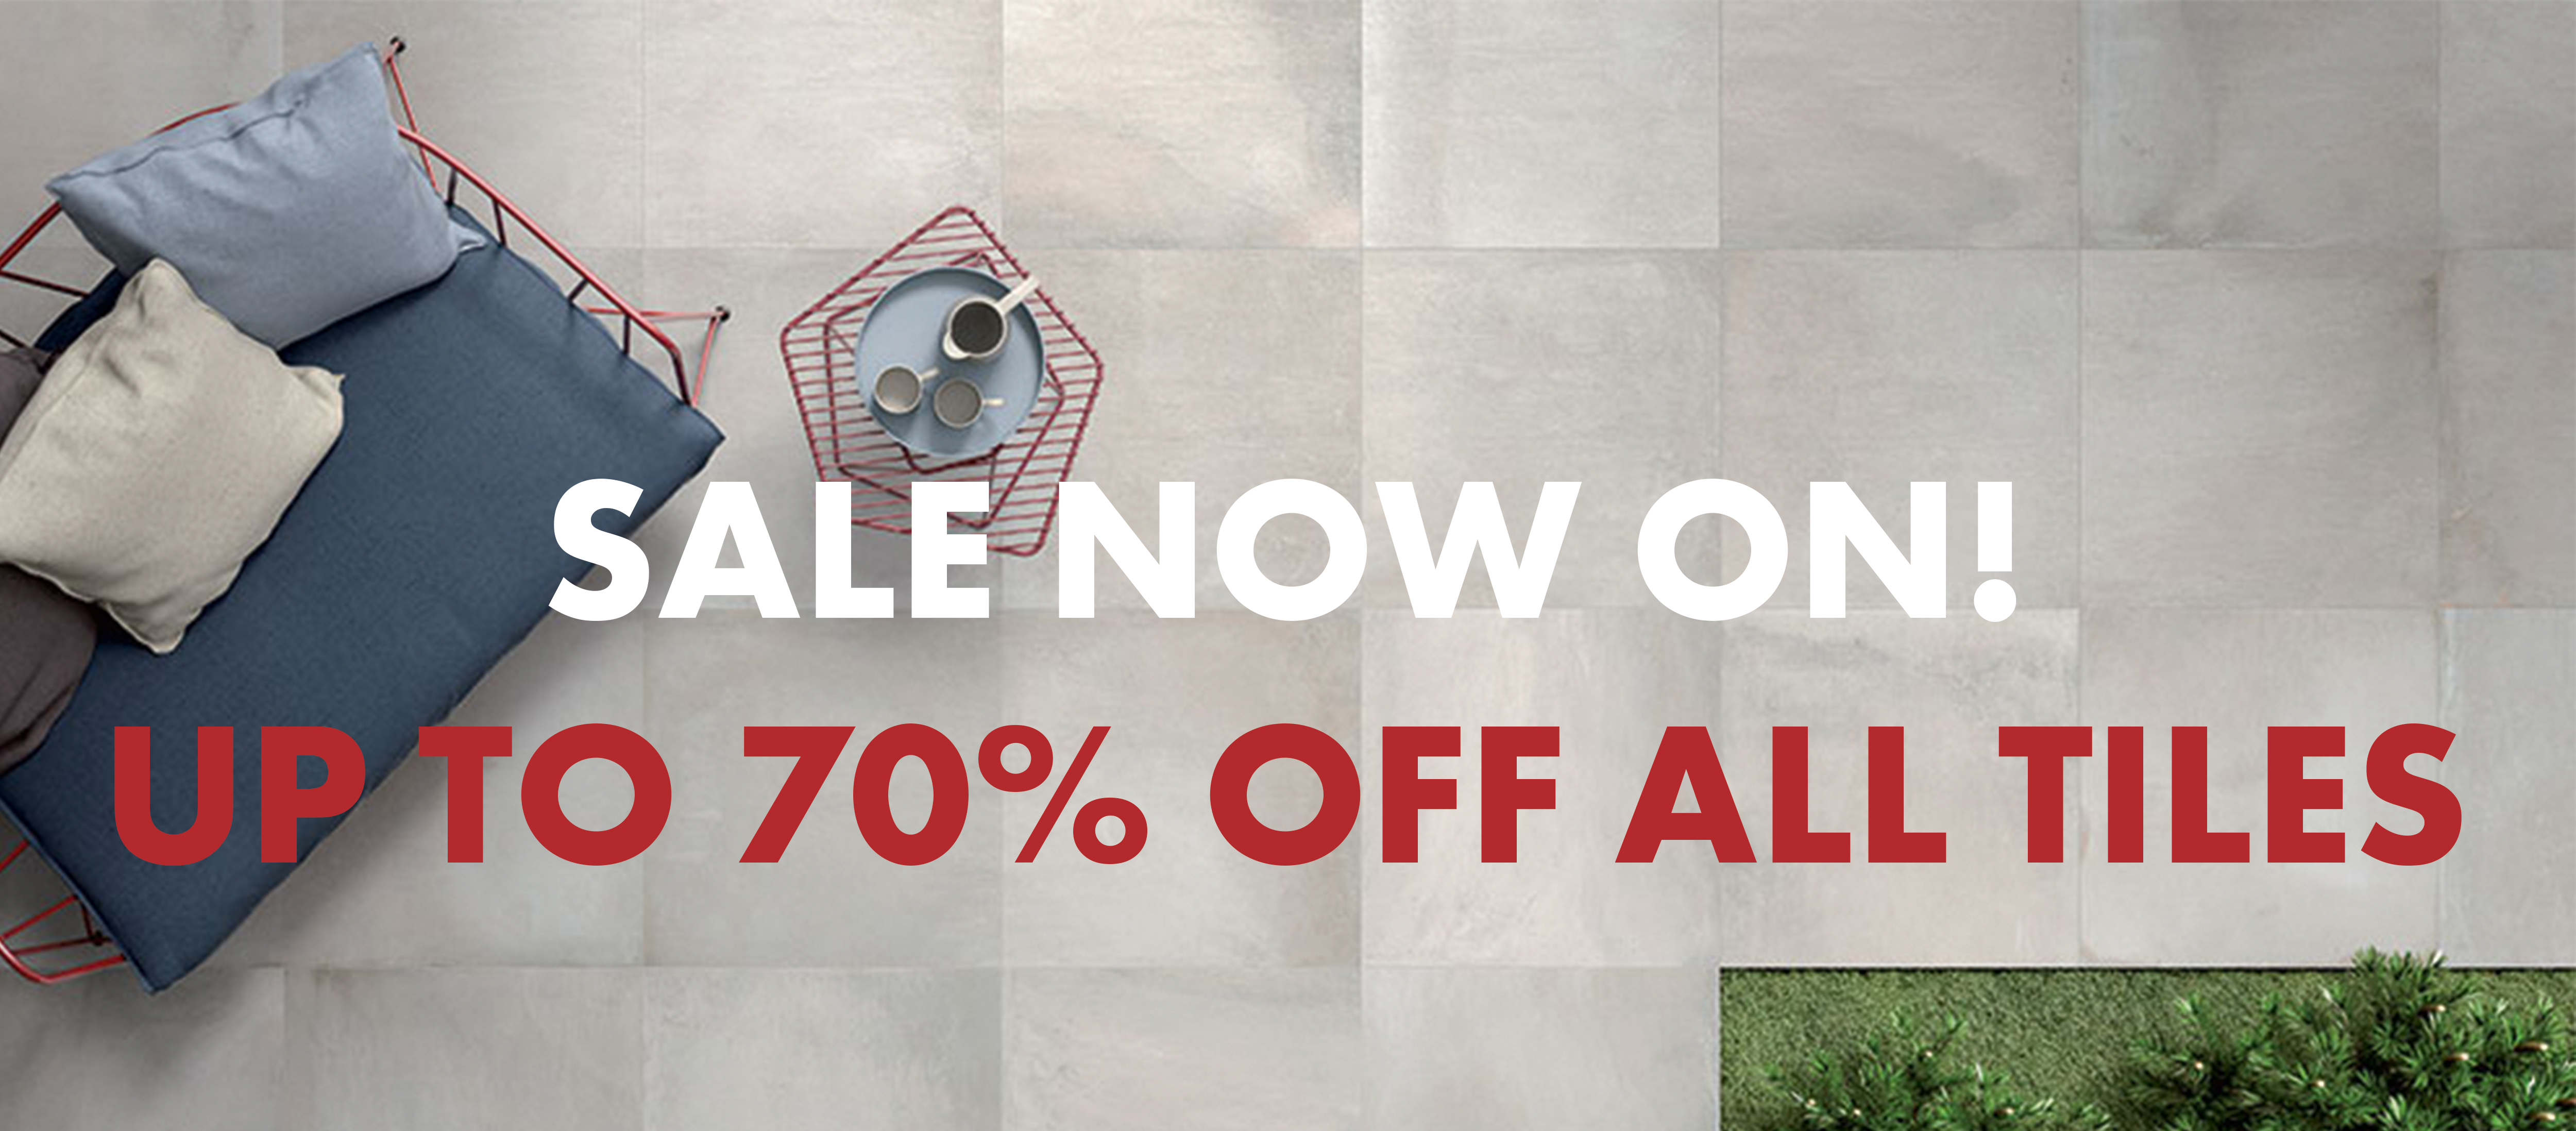 Up to 70% off all tiles! - News | Midas